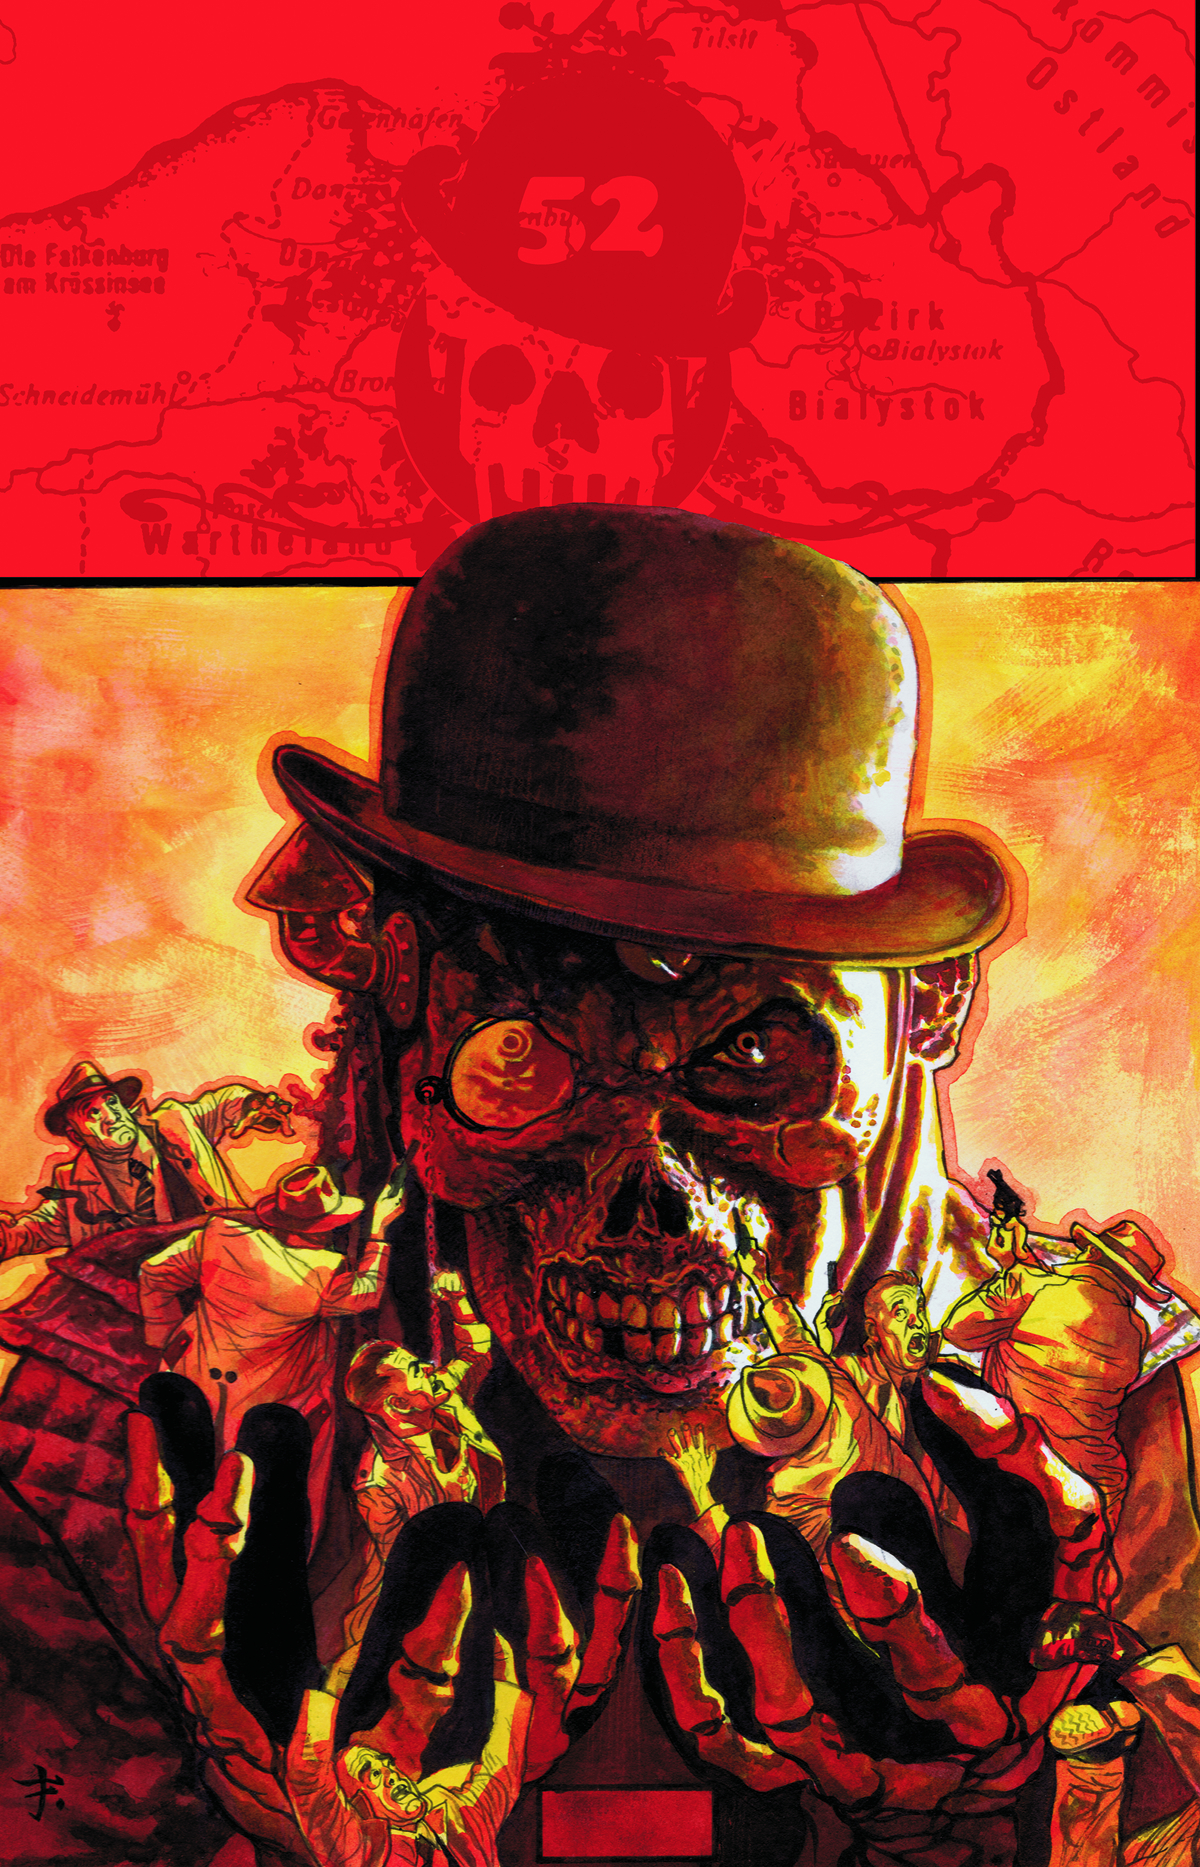 JSA LIBERTY FILES THE WHISTLING SKULL #4